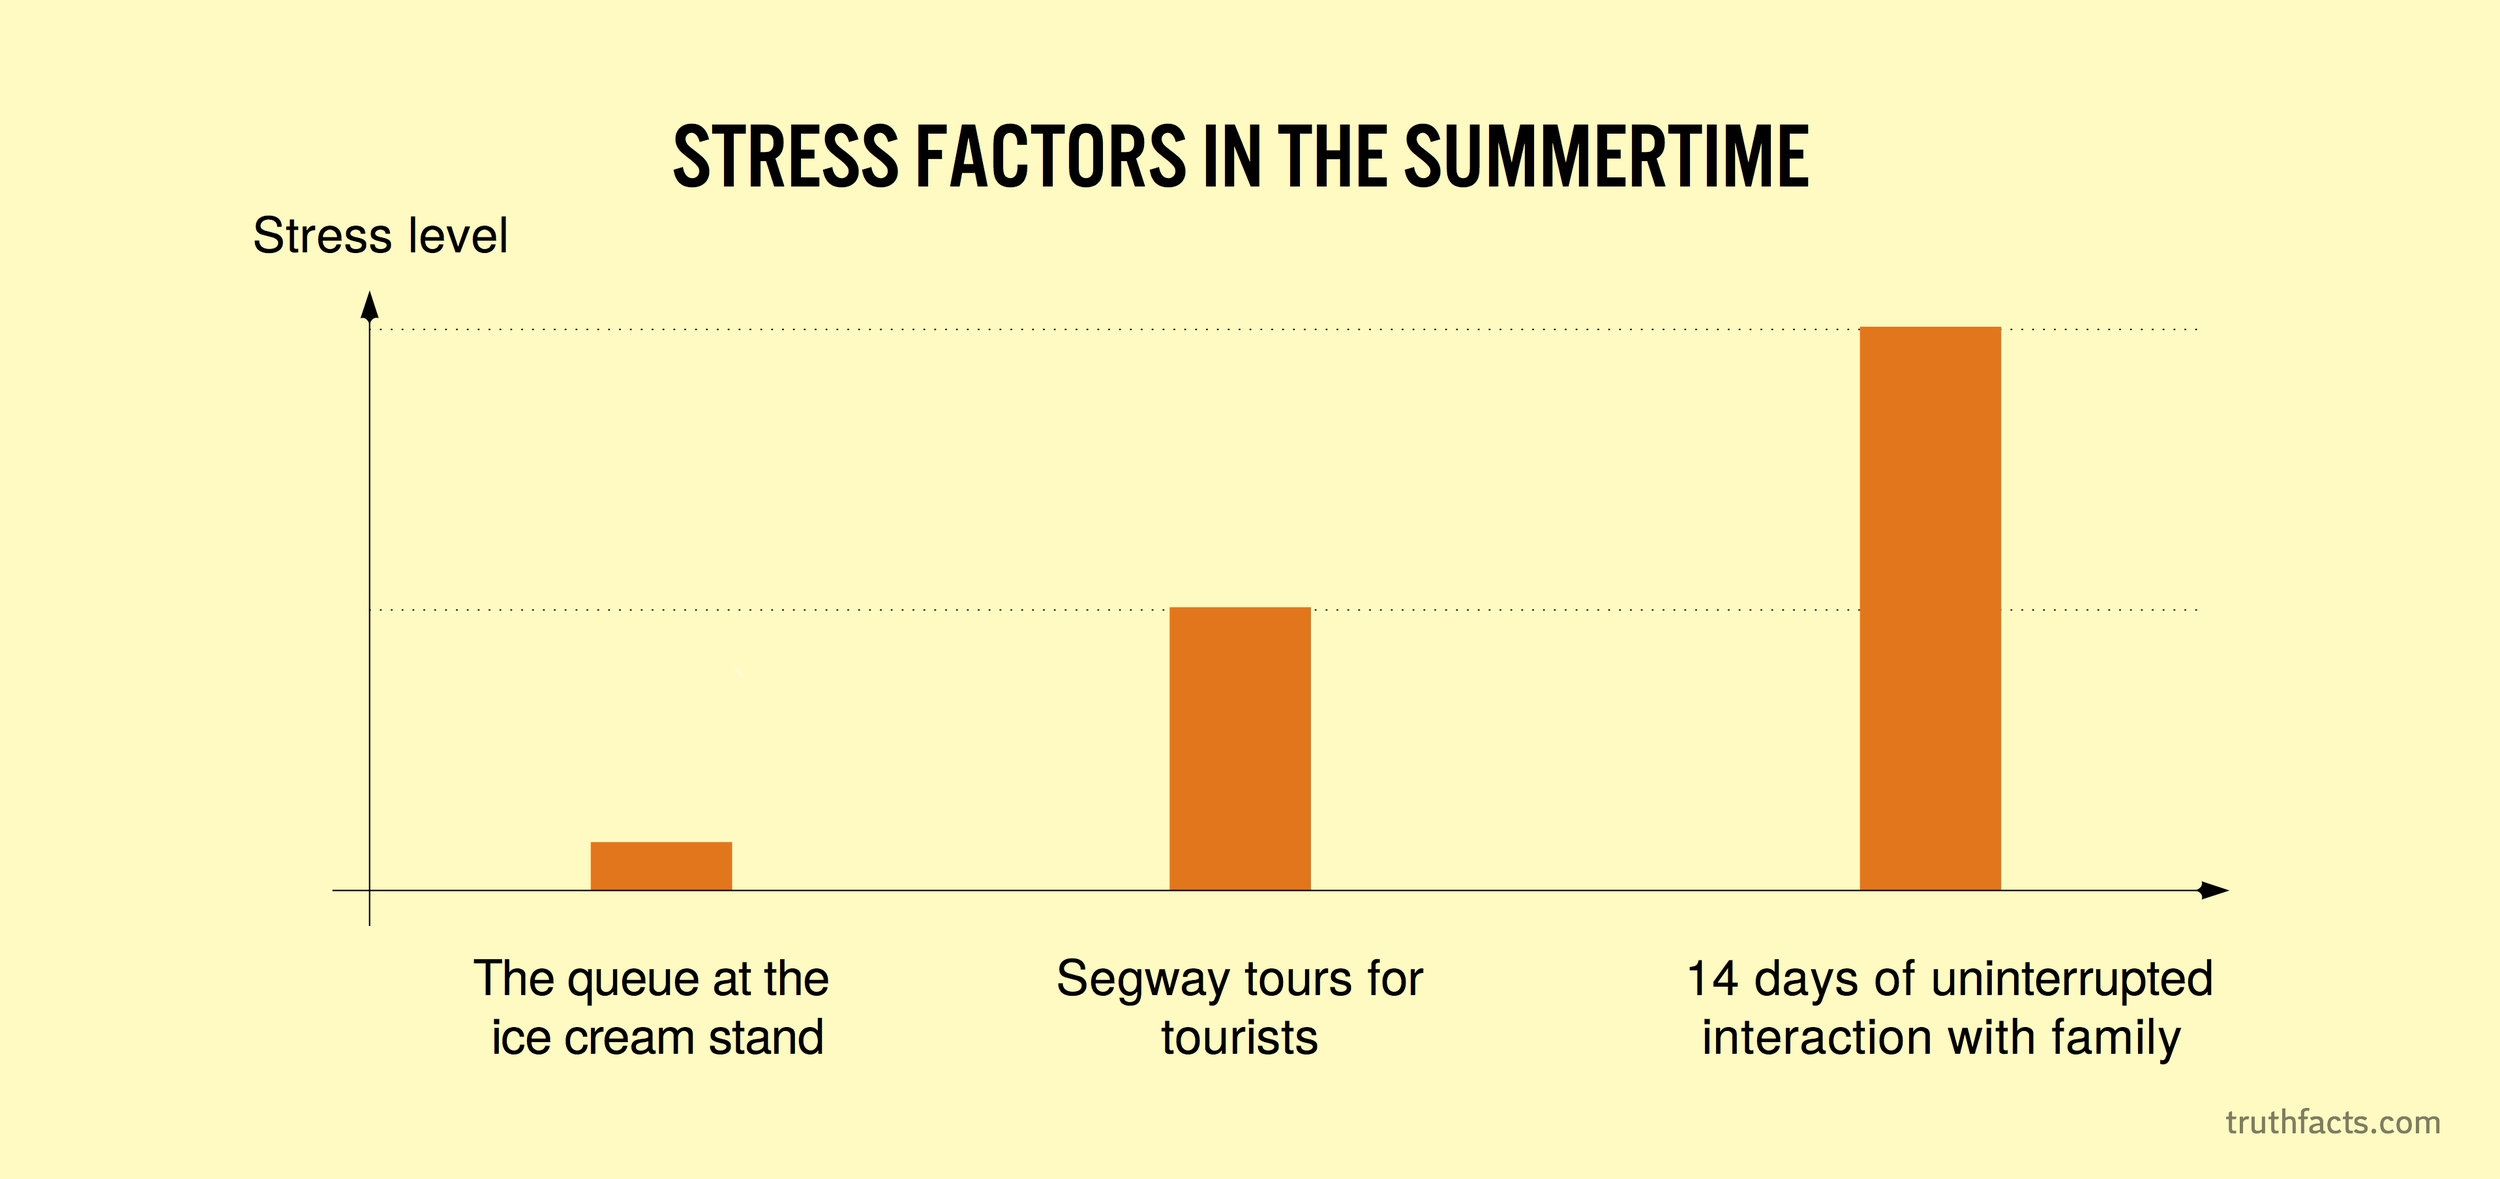 Stress factors in the summertime